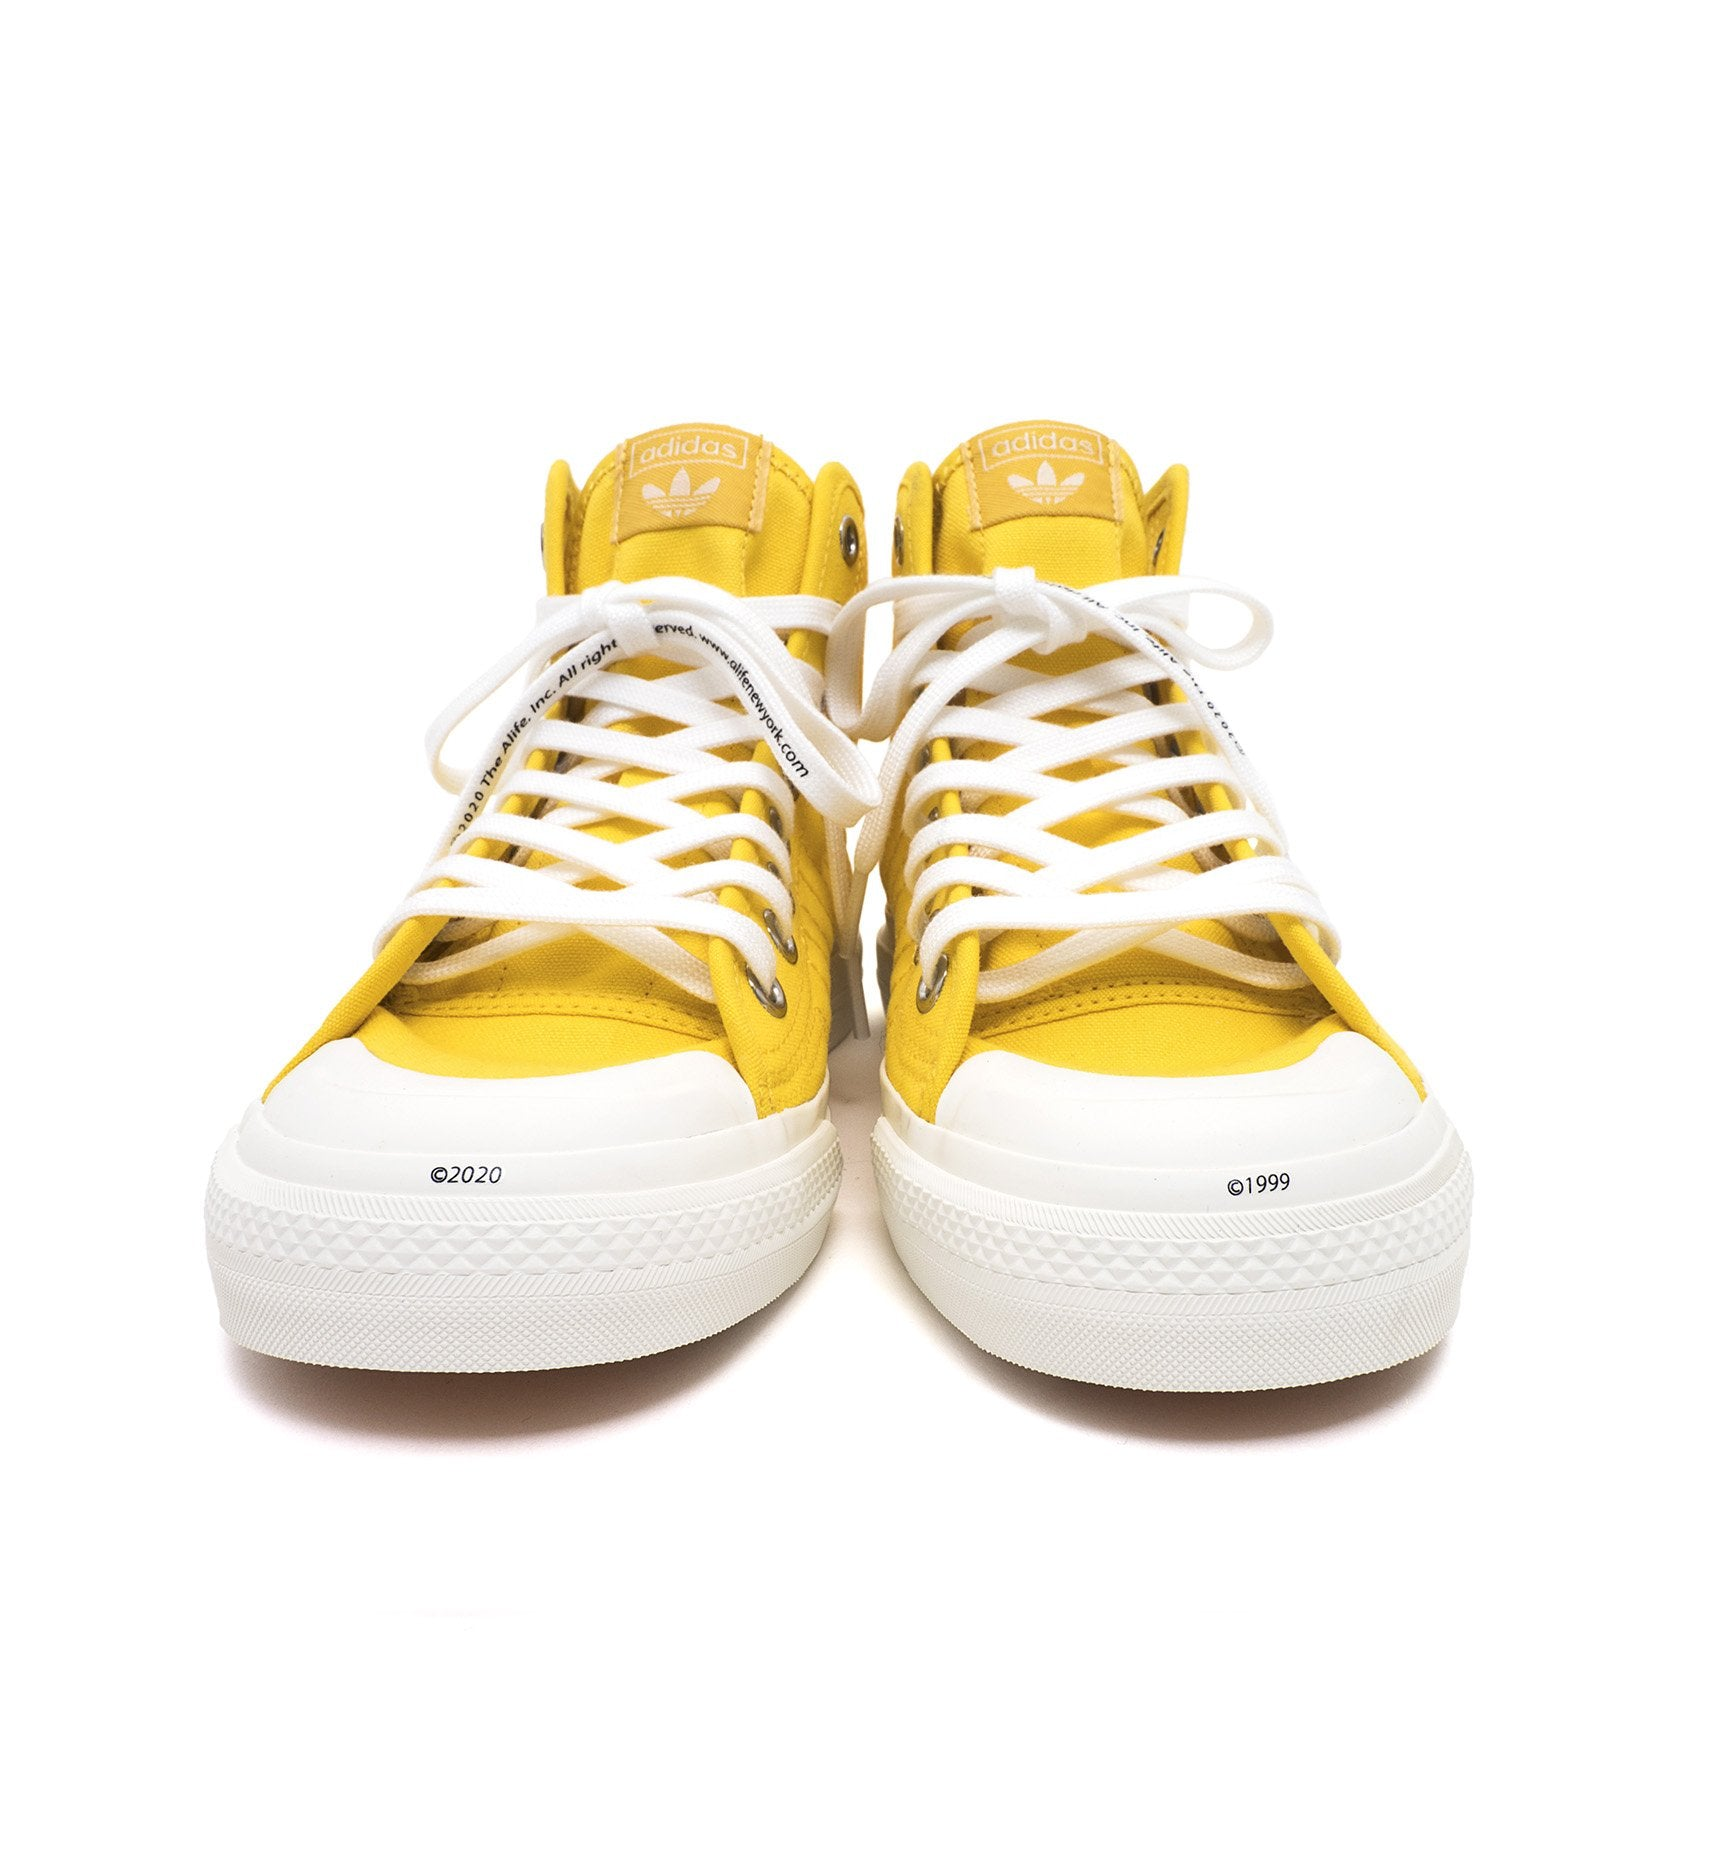 Alife adidas Nizza Yellow - 4_FX2619